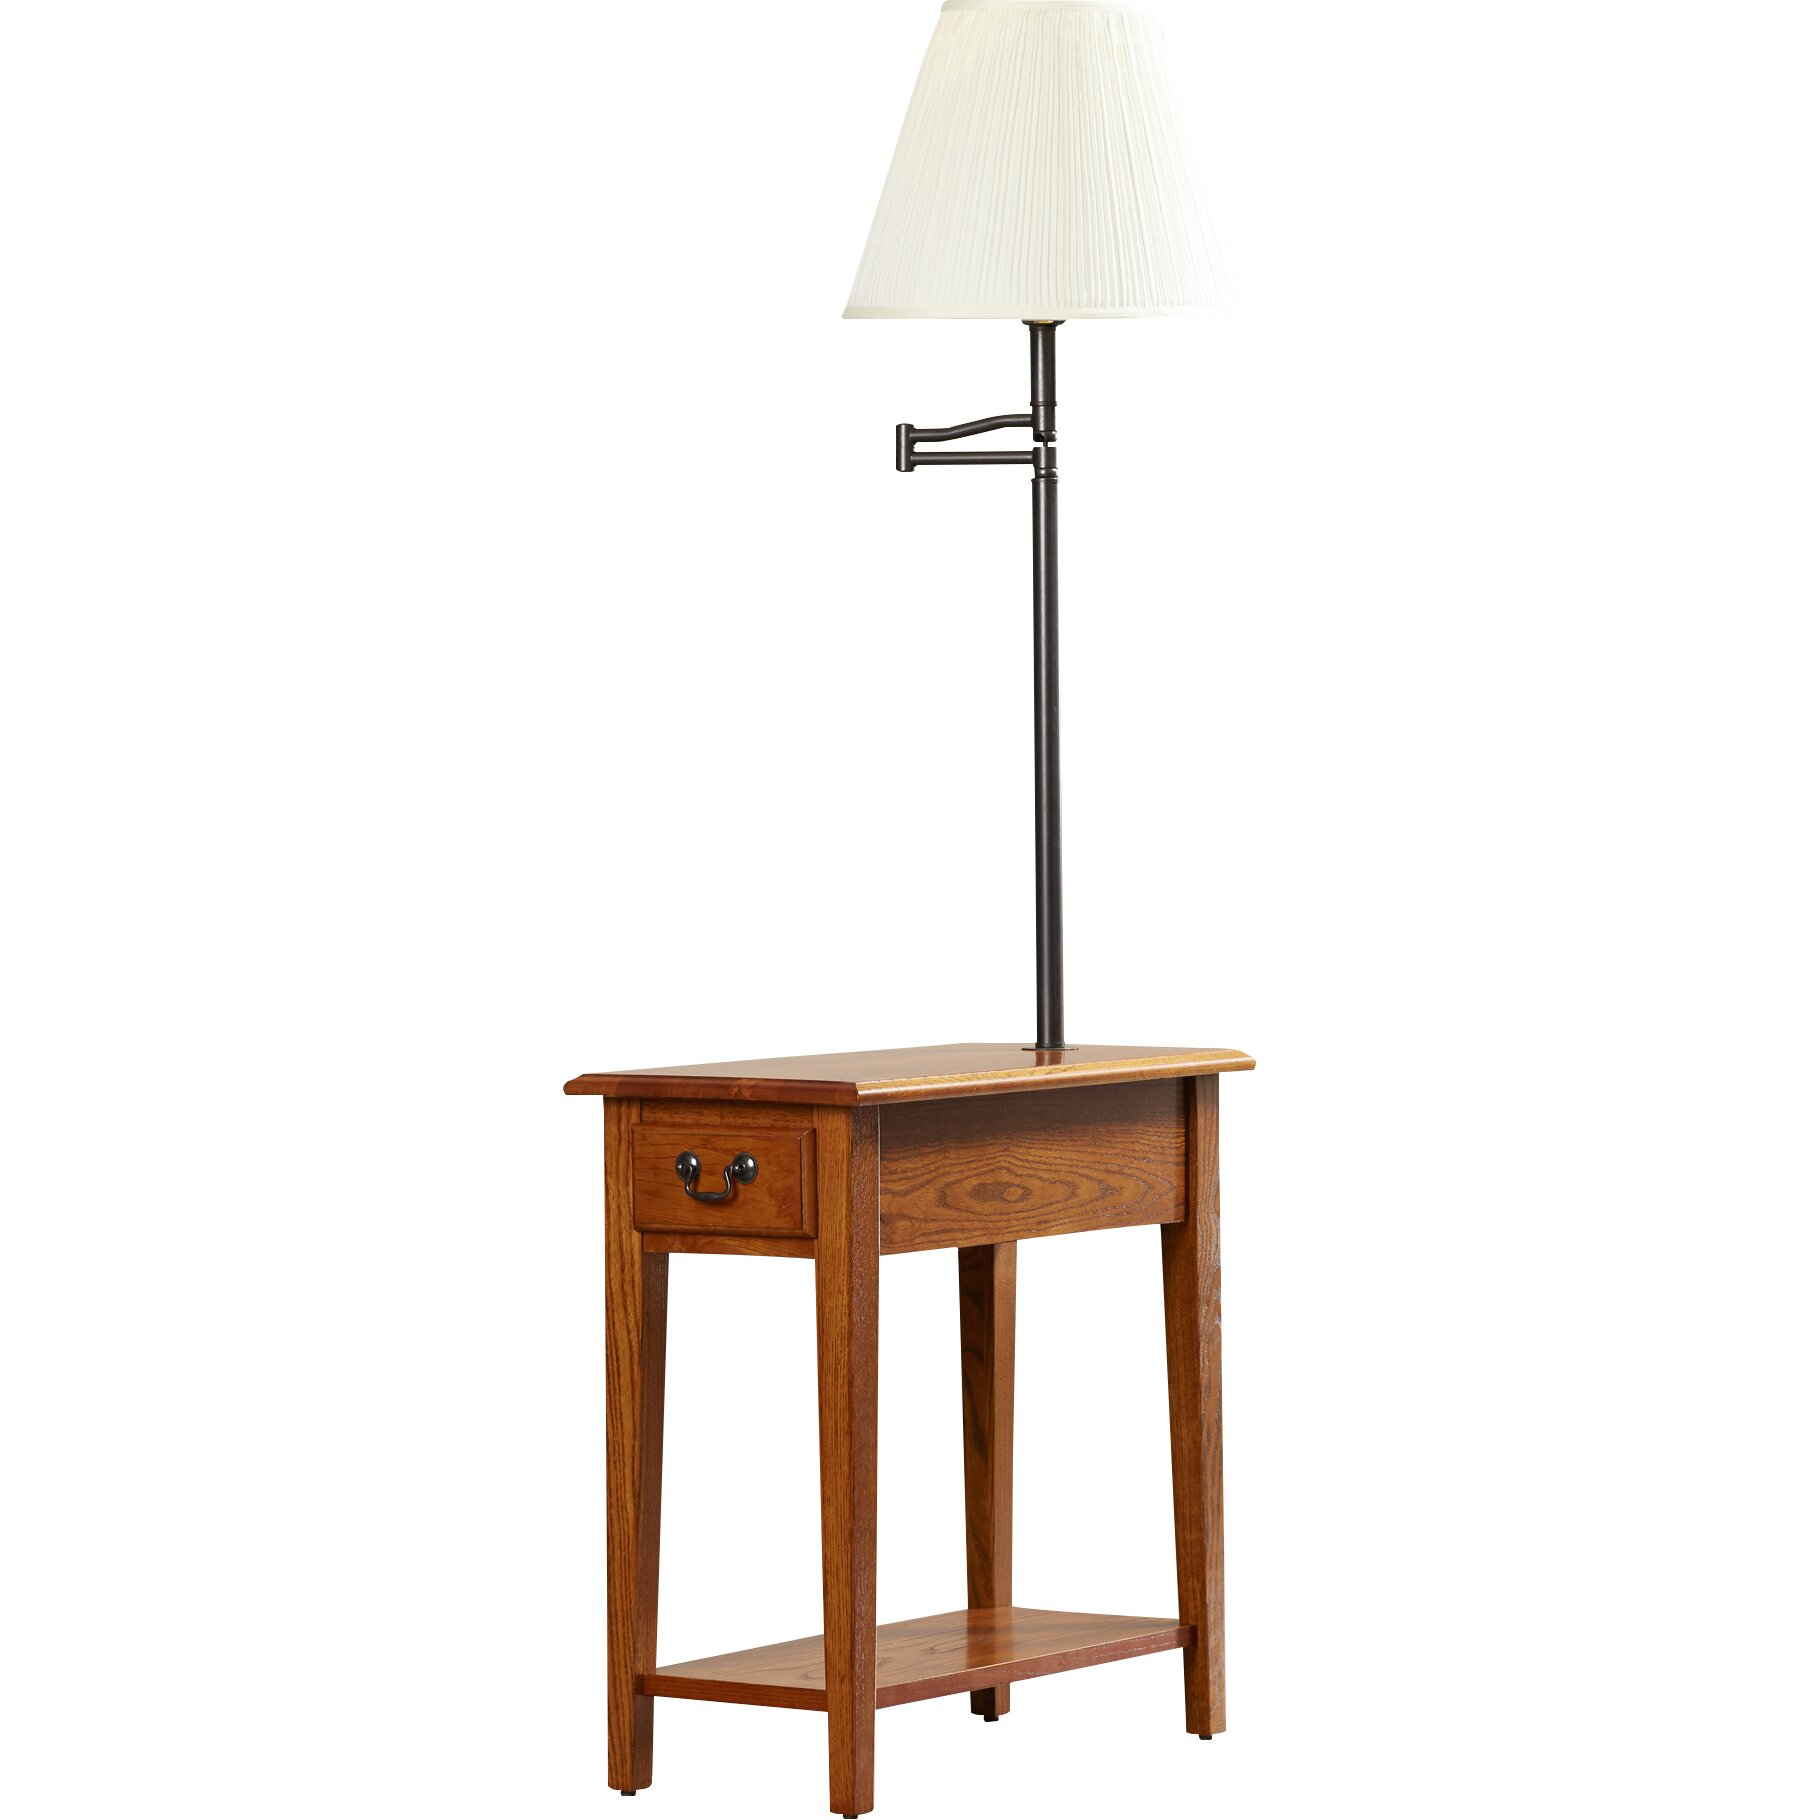 Patio wall decorations - Charlton Home Apple Valley Chairside Lamp End Table